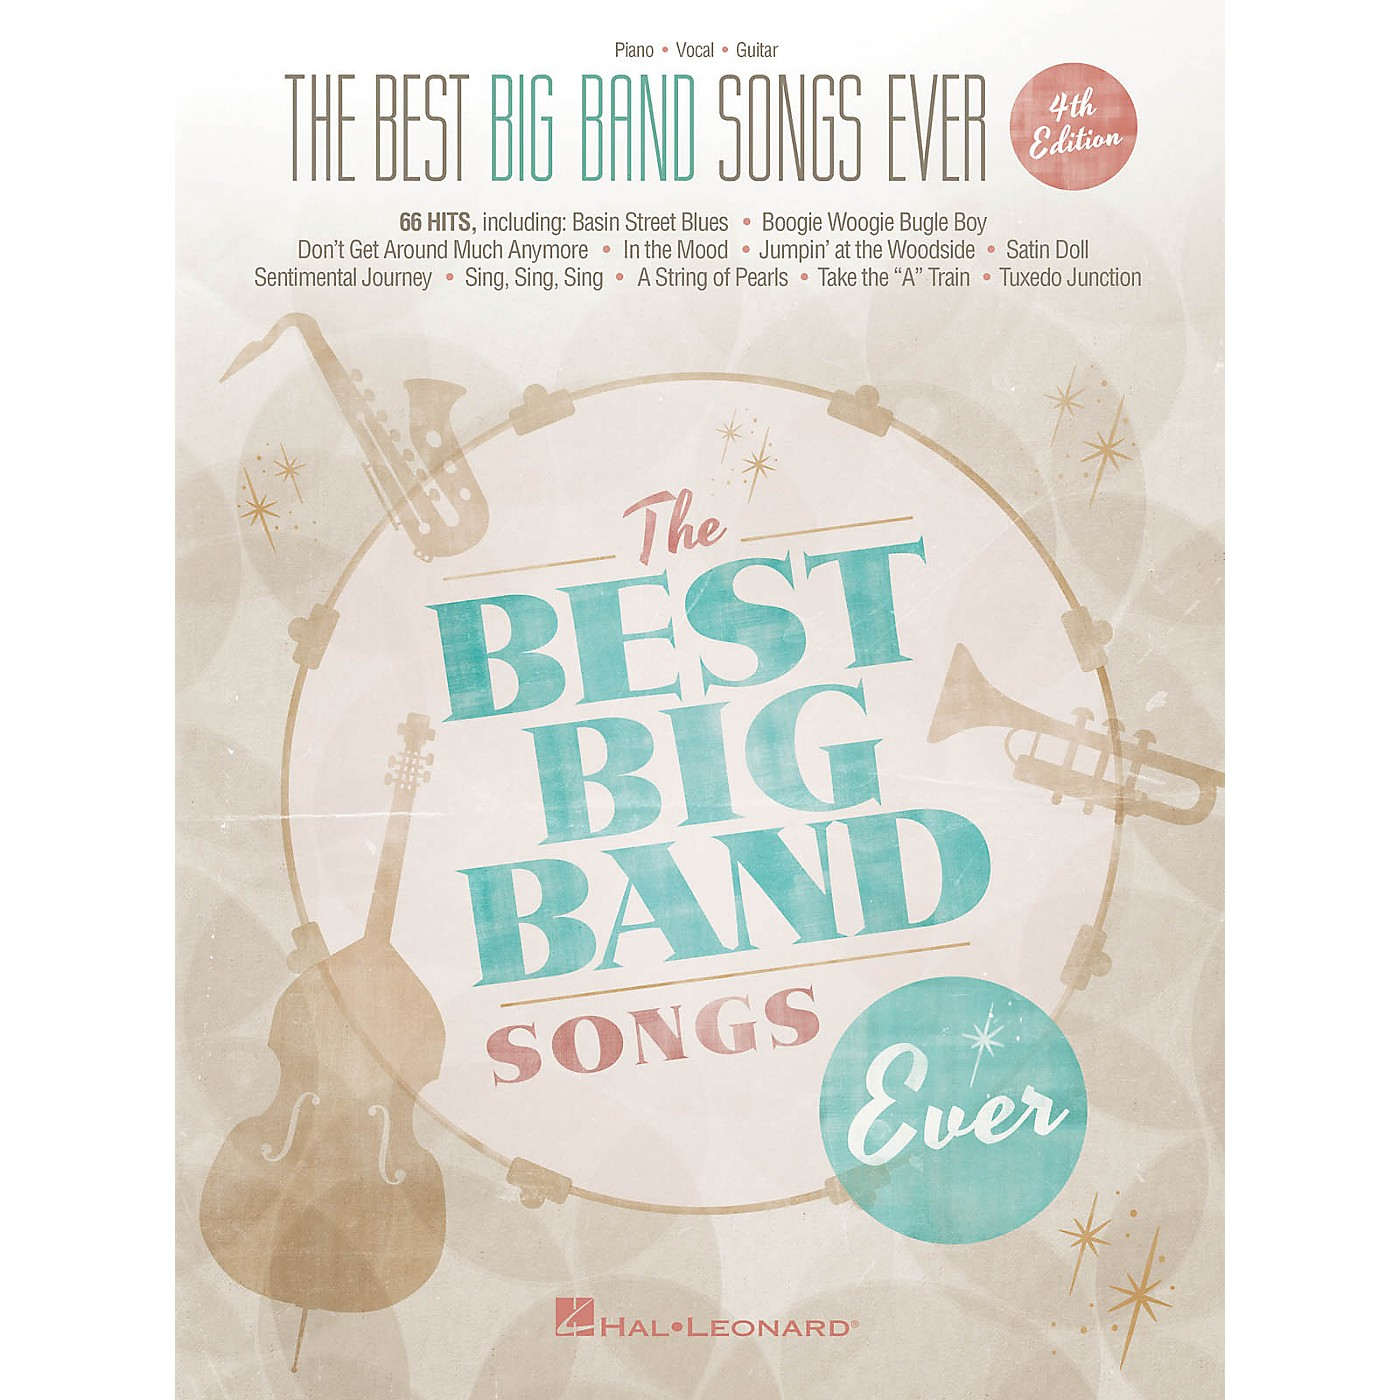 Hal Leonard The Best Big Band Songs Ever - 4th Edition Piano/Vocal/Guitar Songbook thumbnail